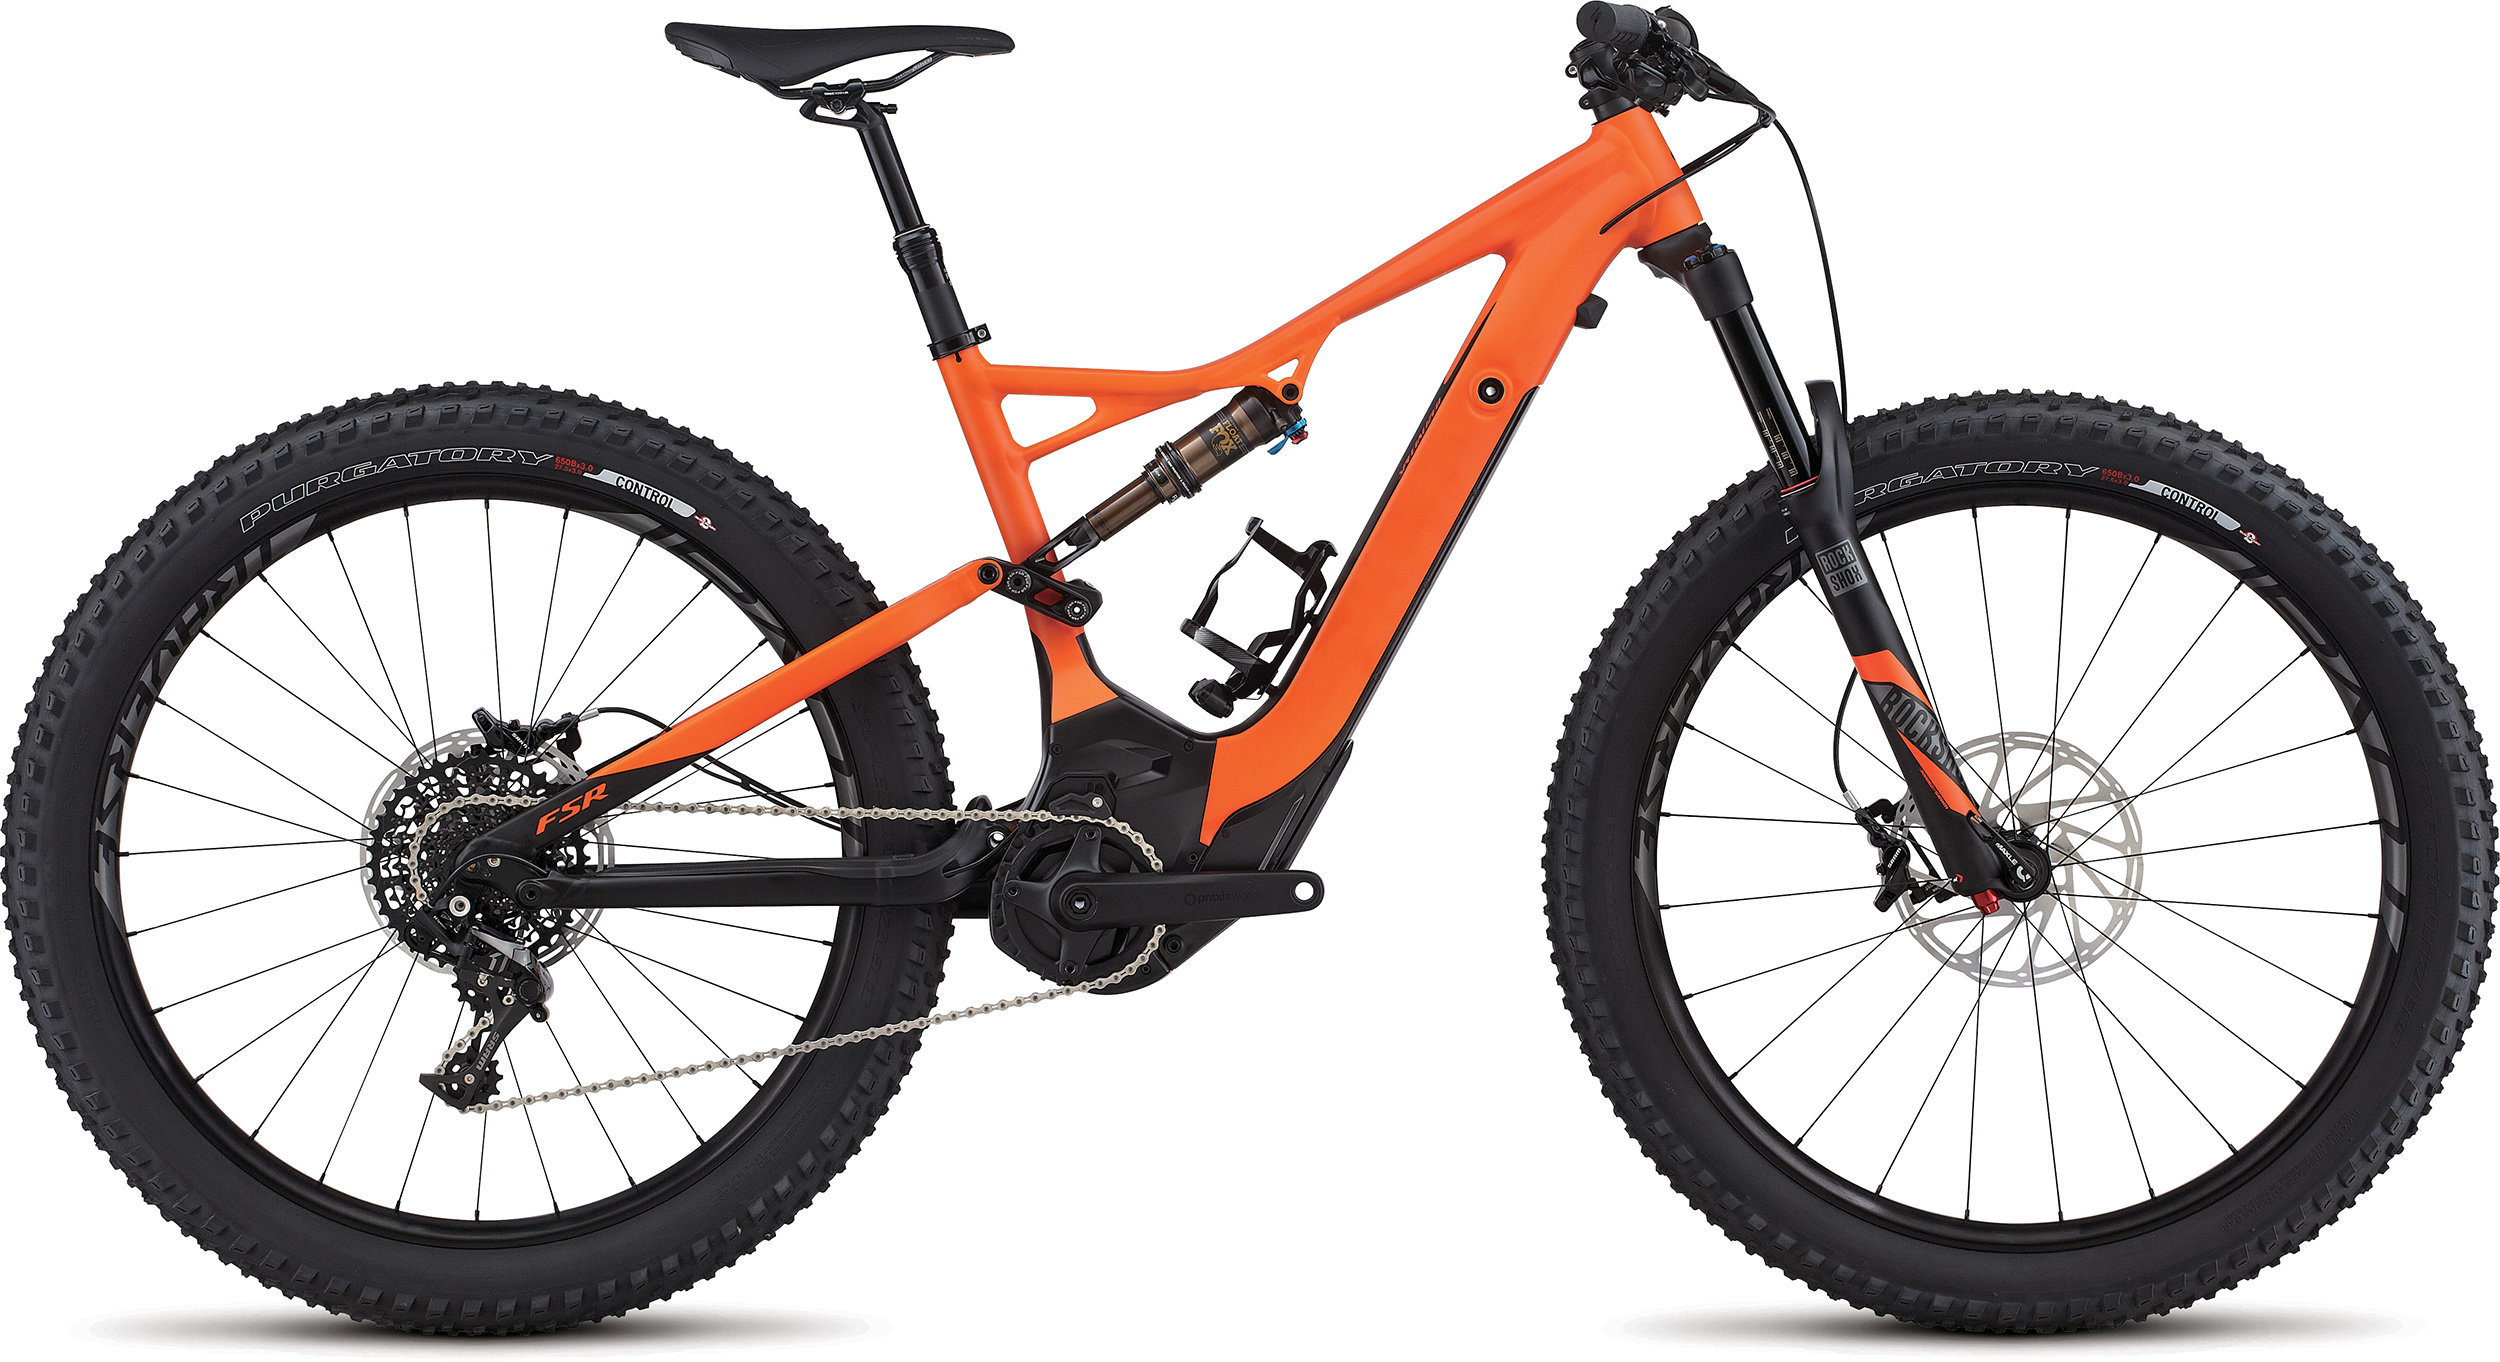 SPECIALIZED LEVO FSR EXPERT 6FATTIE CE MXORG/BLK L - Bike Zone